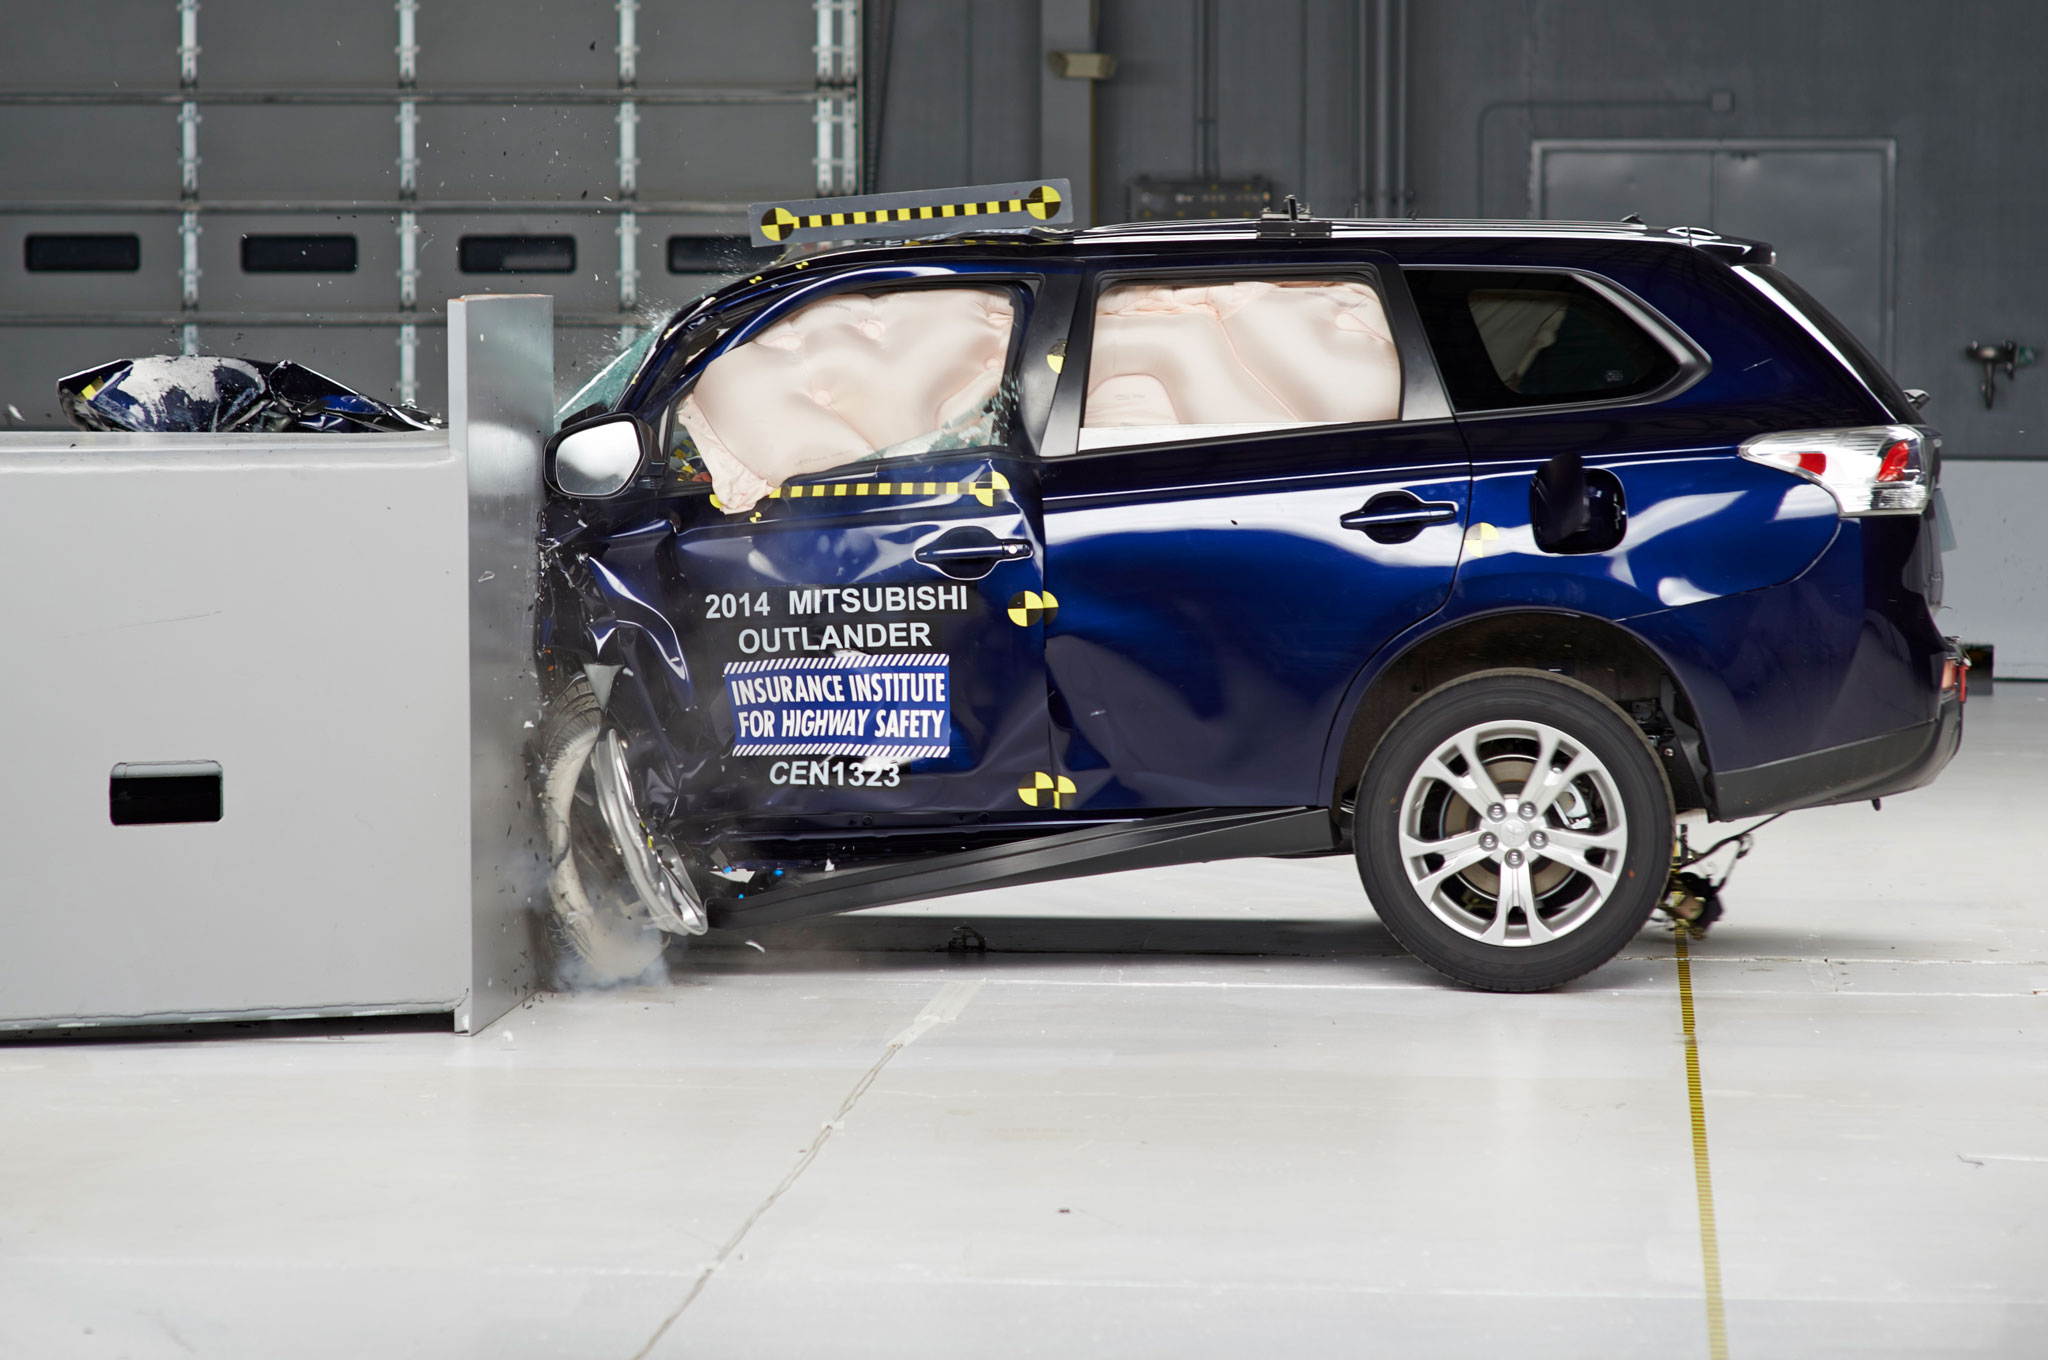 2014 Mitsubishi Outlander Rated Top Safety Pick